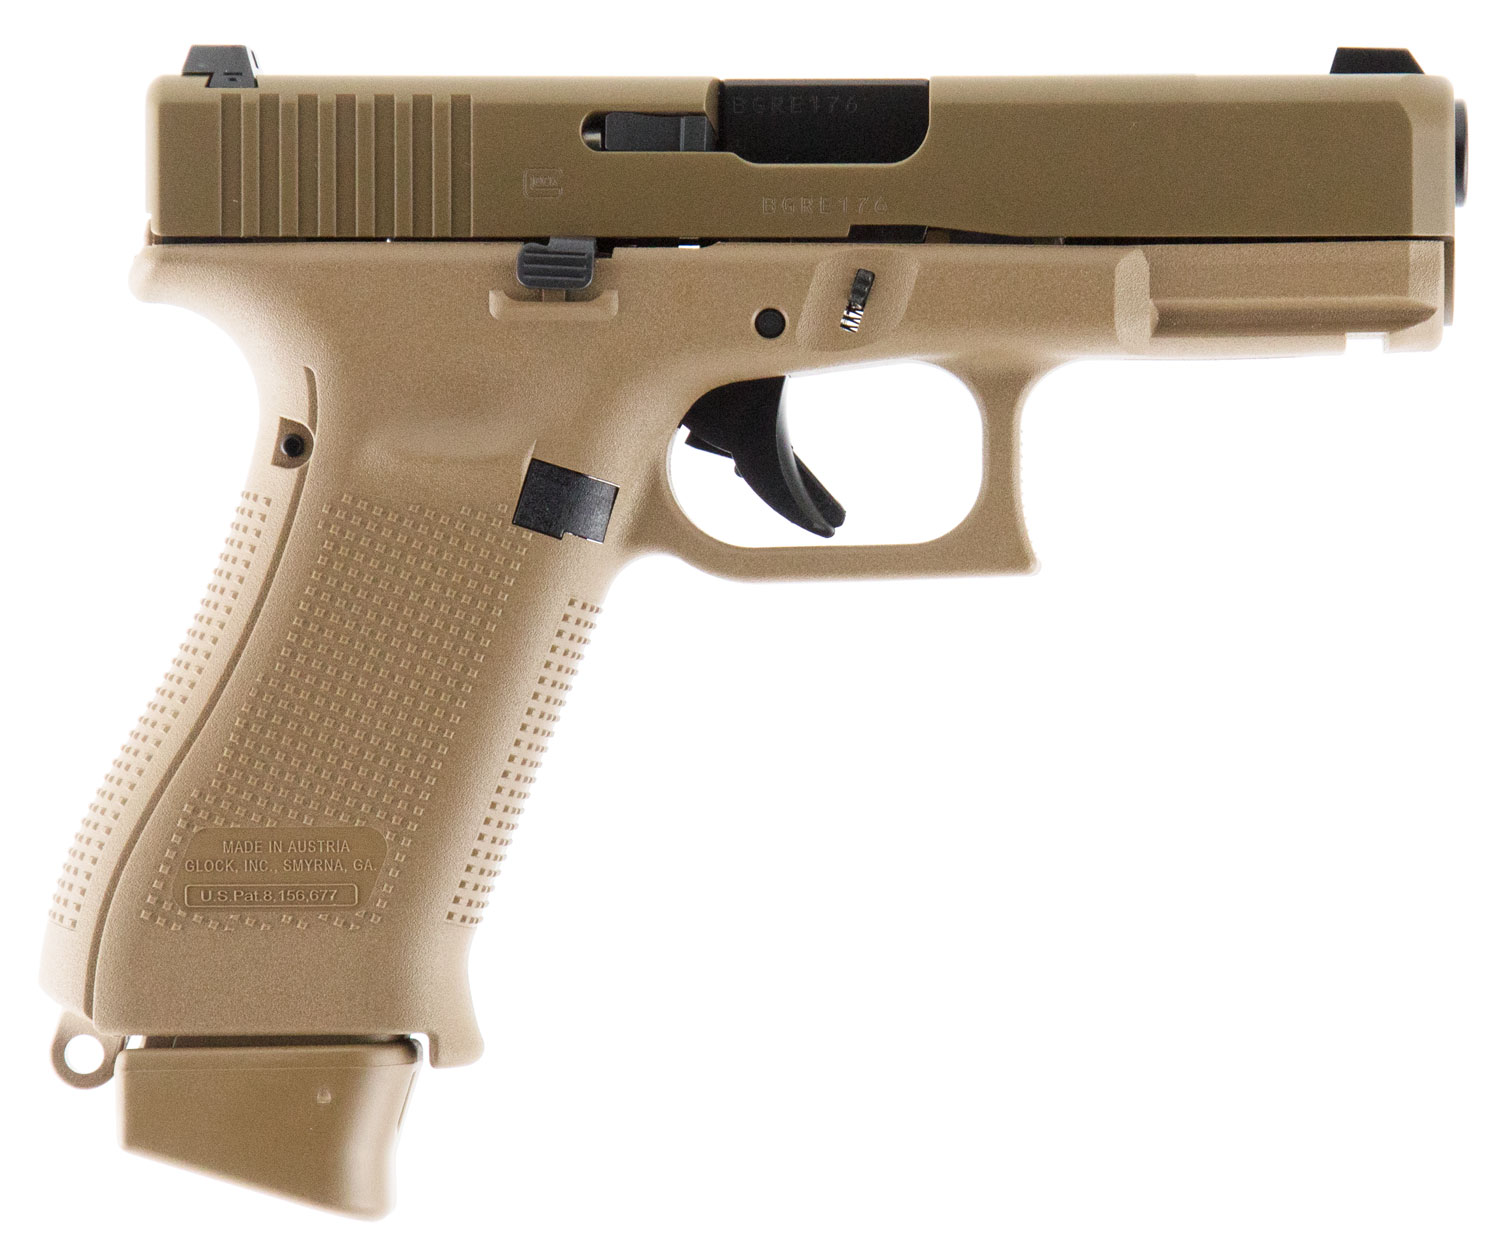 Glock PX1950701 G19X Compact Crossover 9mm Luger 4.02